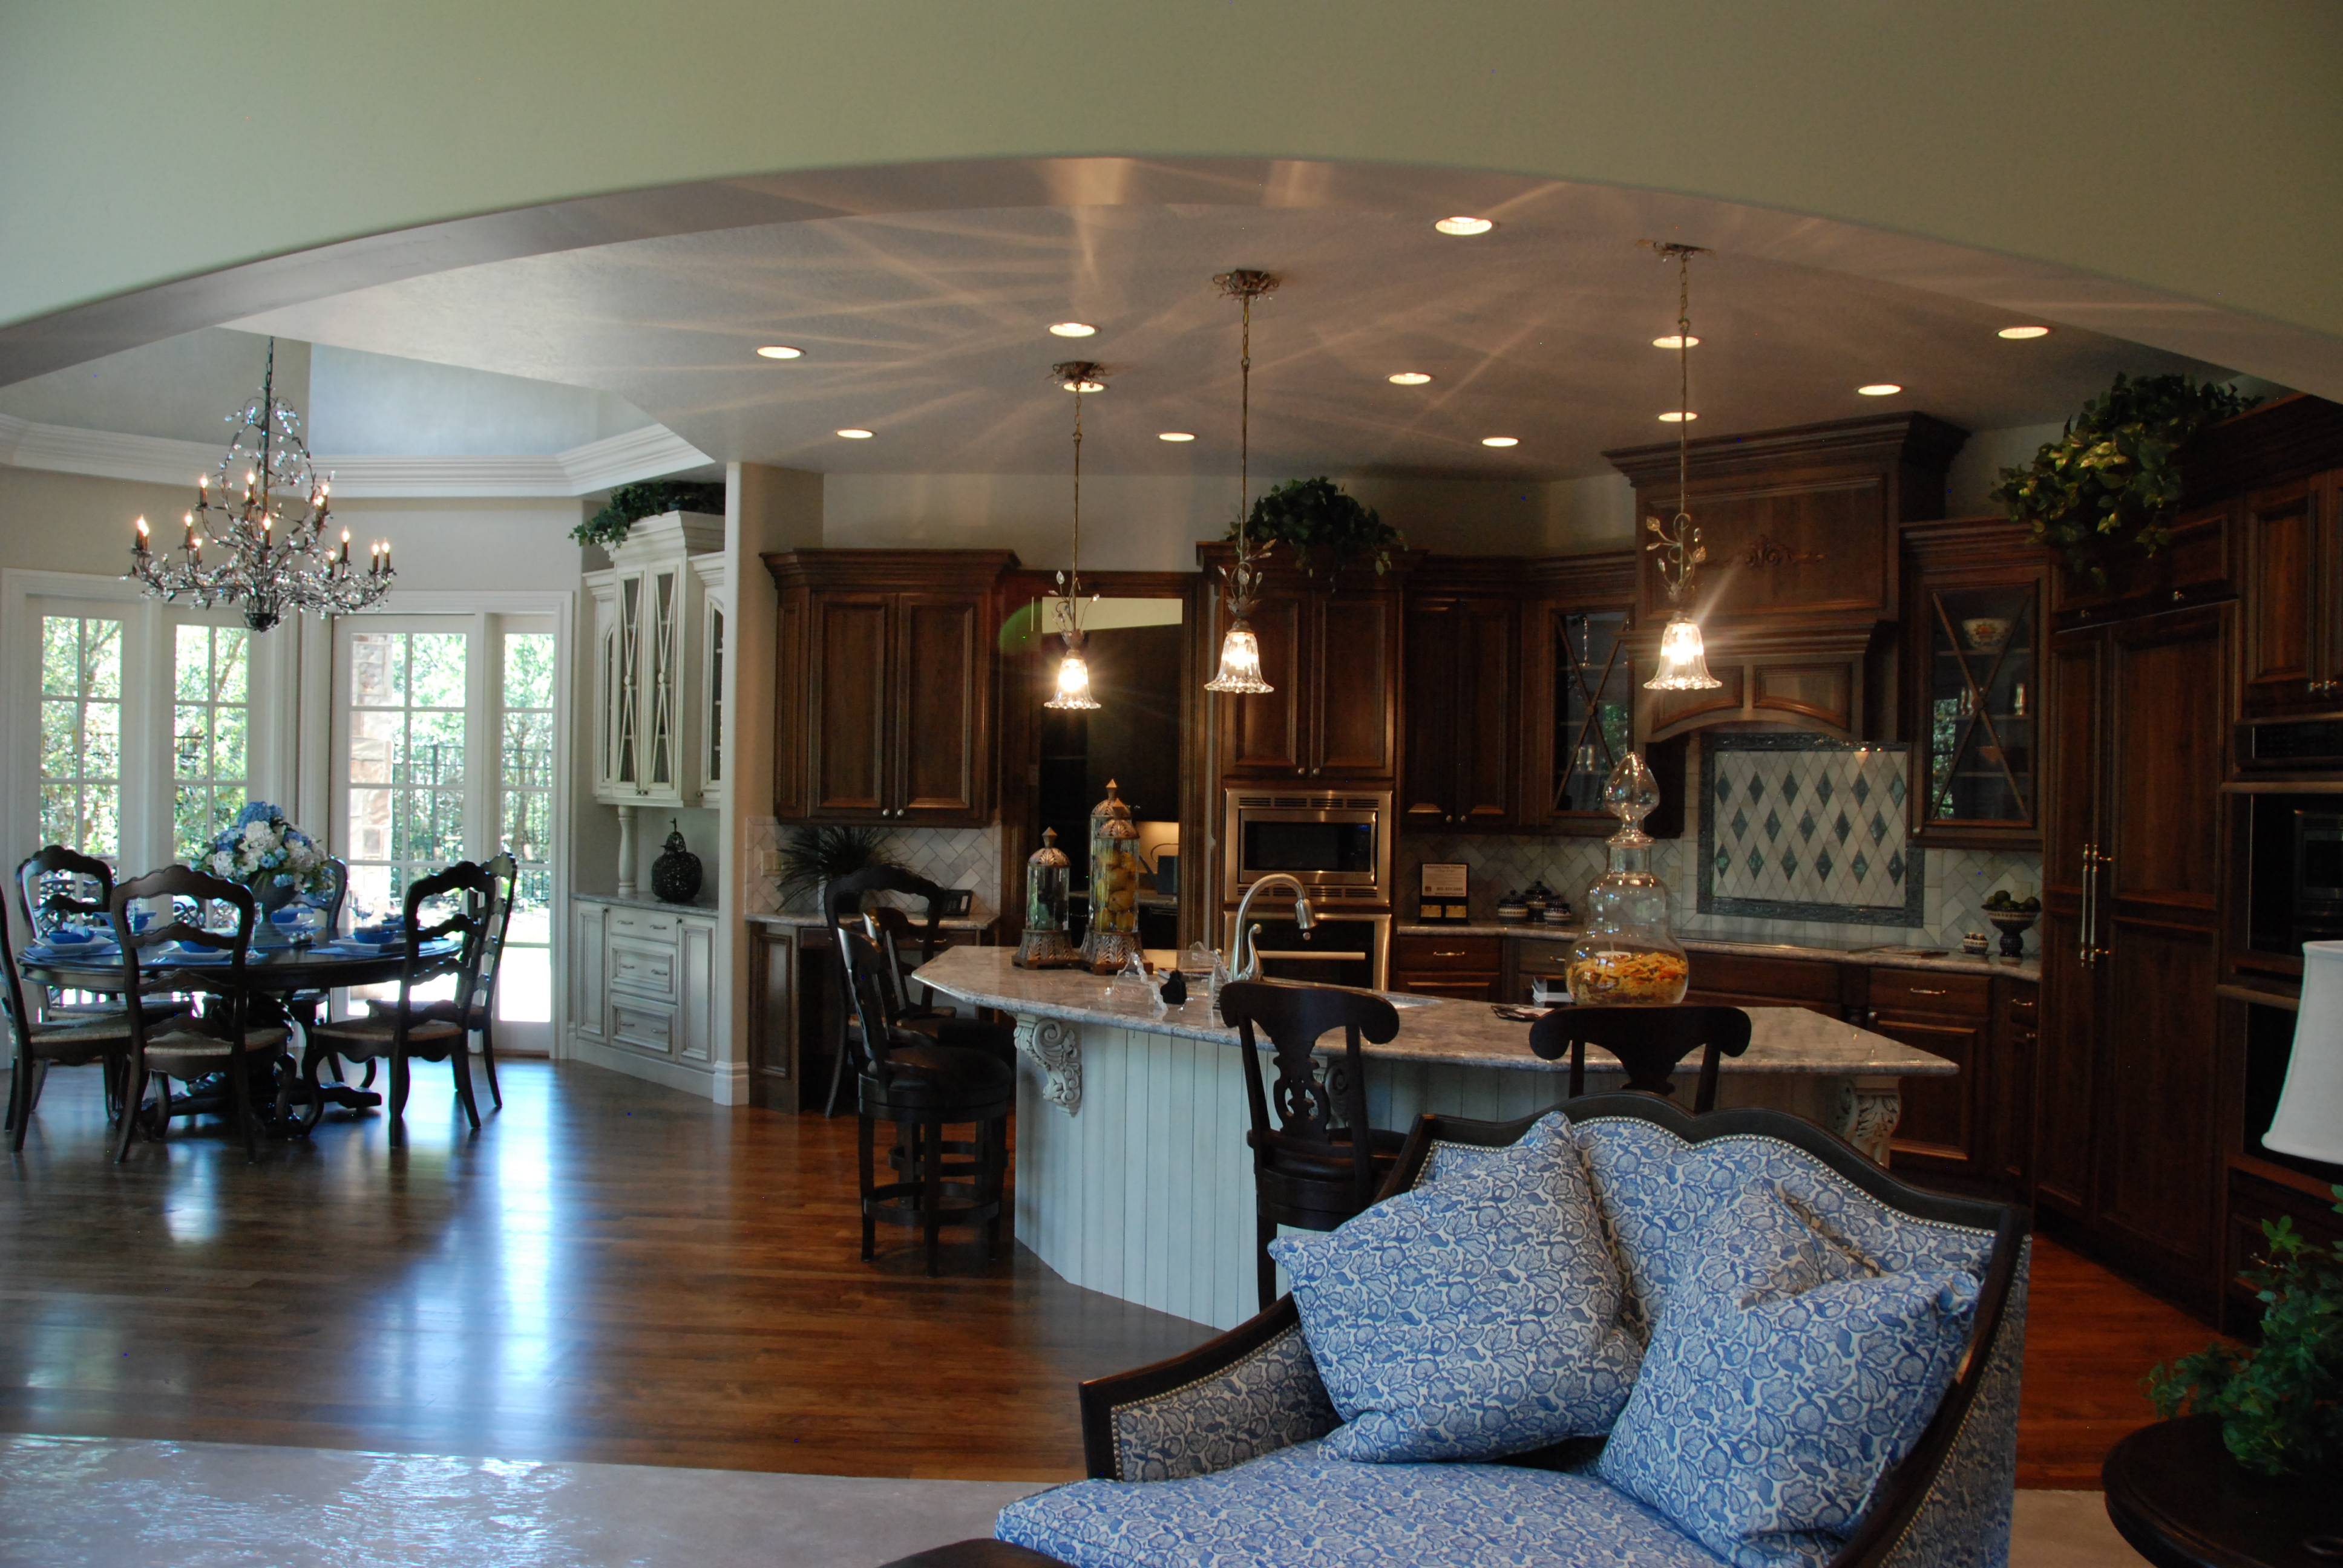 kitchen hutch cabinet cabinets miami salt lake parade of homes 2011, steven dailey wins best in ...